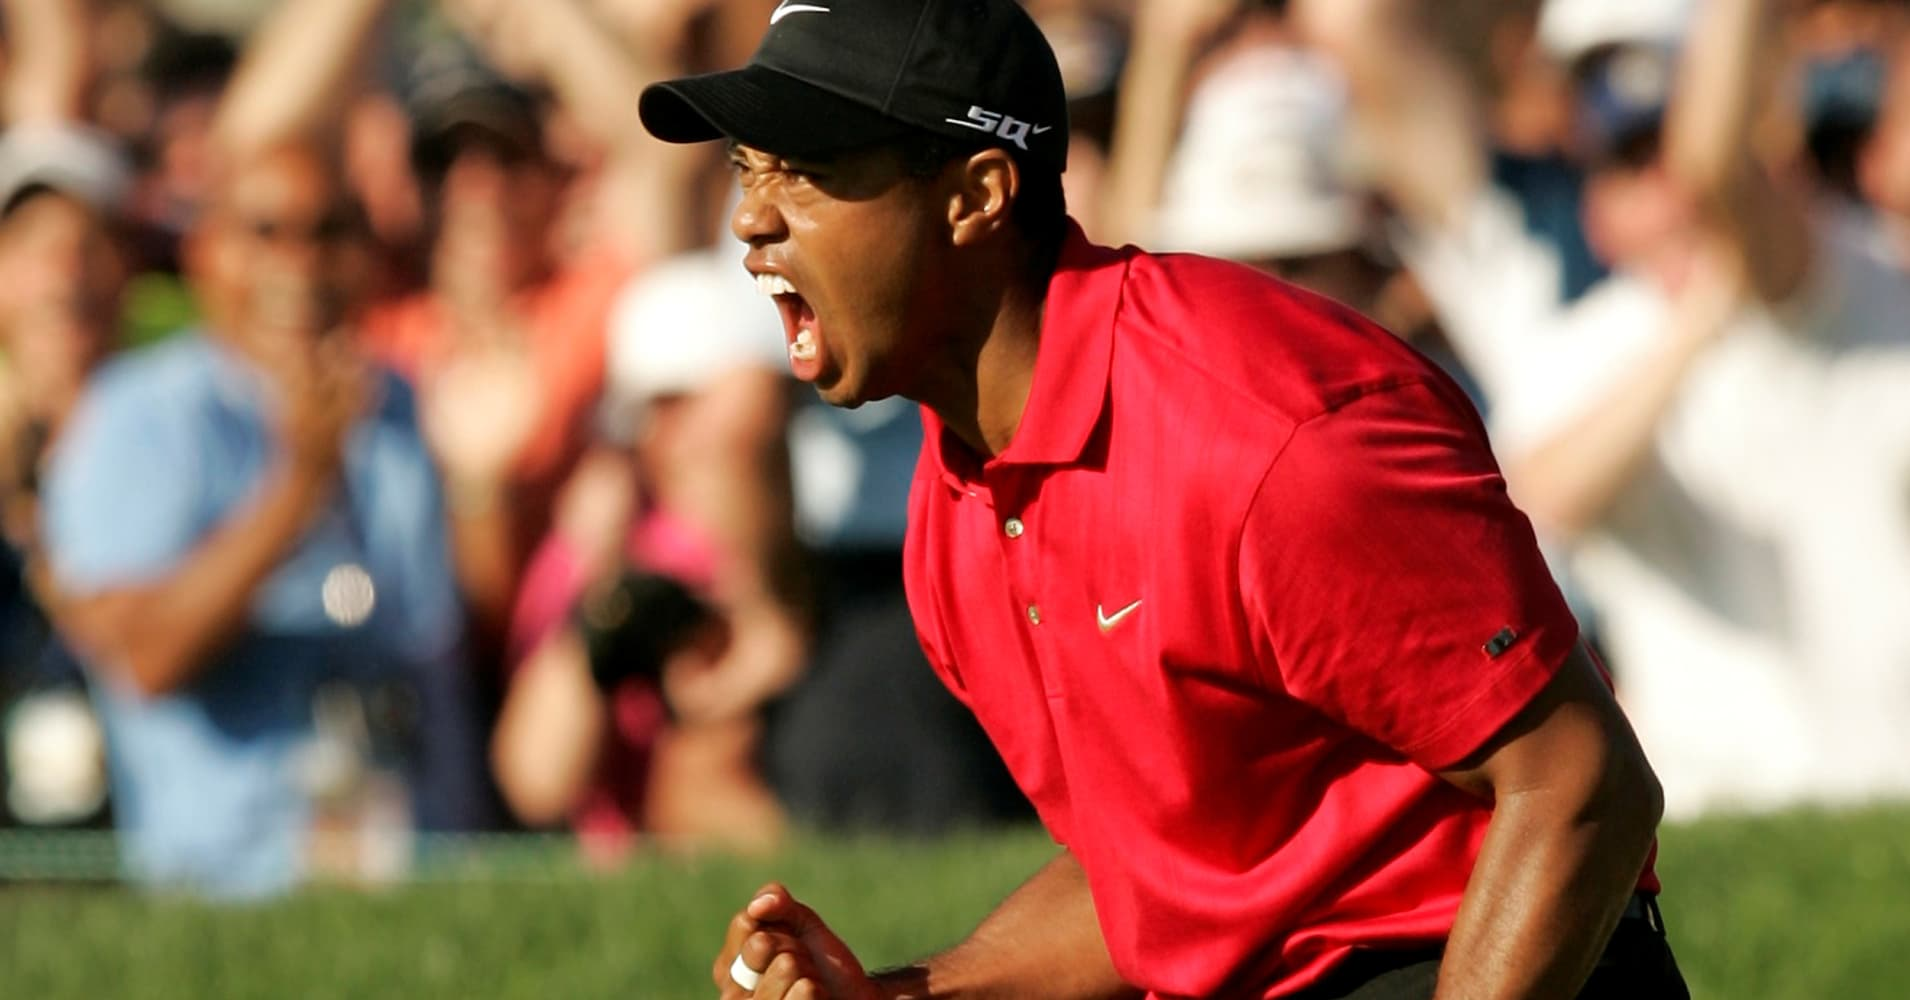 U.S. golfer Tiger Woods celebrates after making a birdie on the 18th hole during the final round of the U.S. Open golf championship at Torrey Pines in San Diego June 15, 2008.